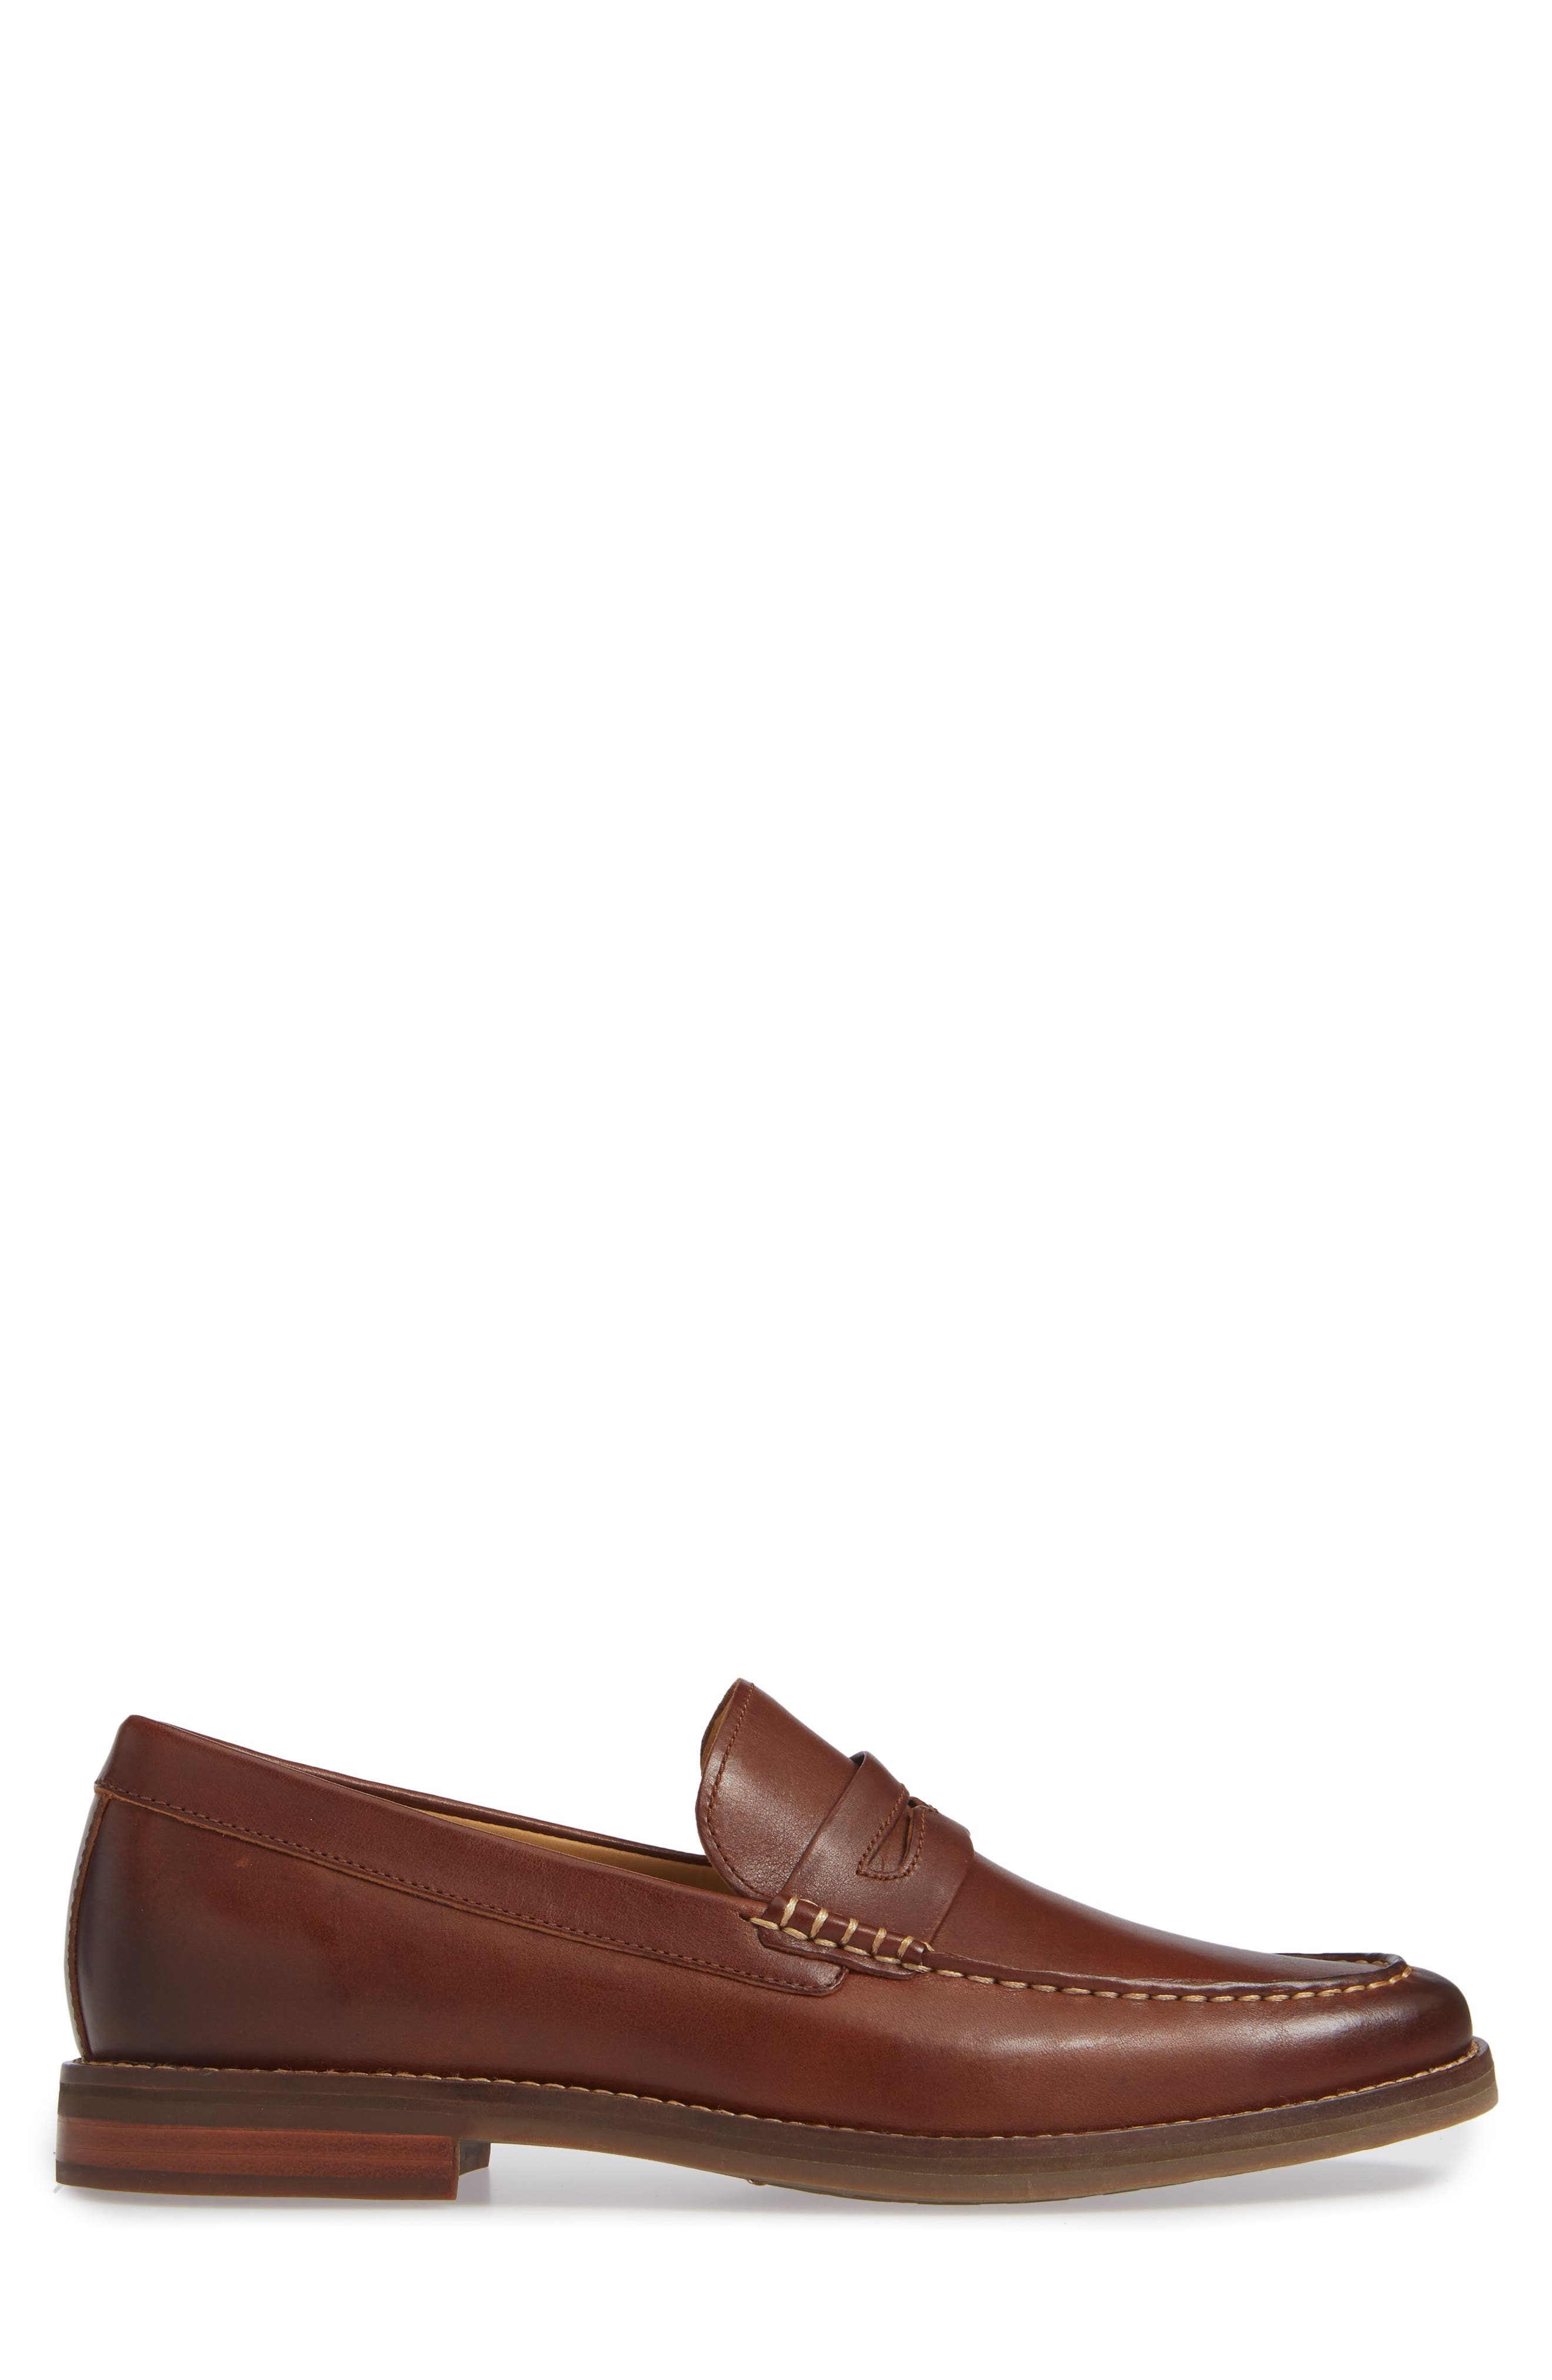 Gold Cup Exeter Penny Loafer,                             Alternate thumbnail 3, color,                             TAN